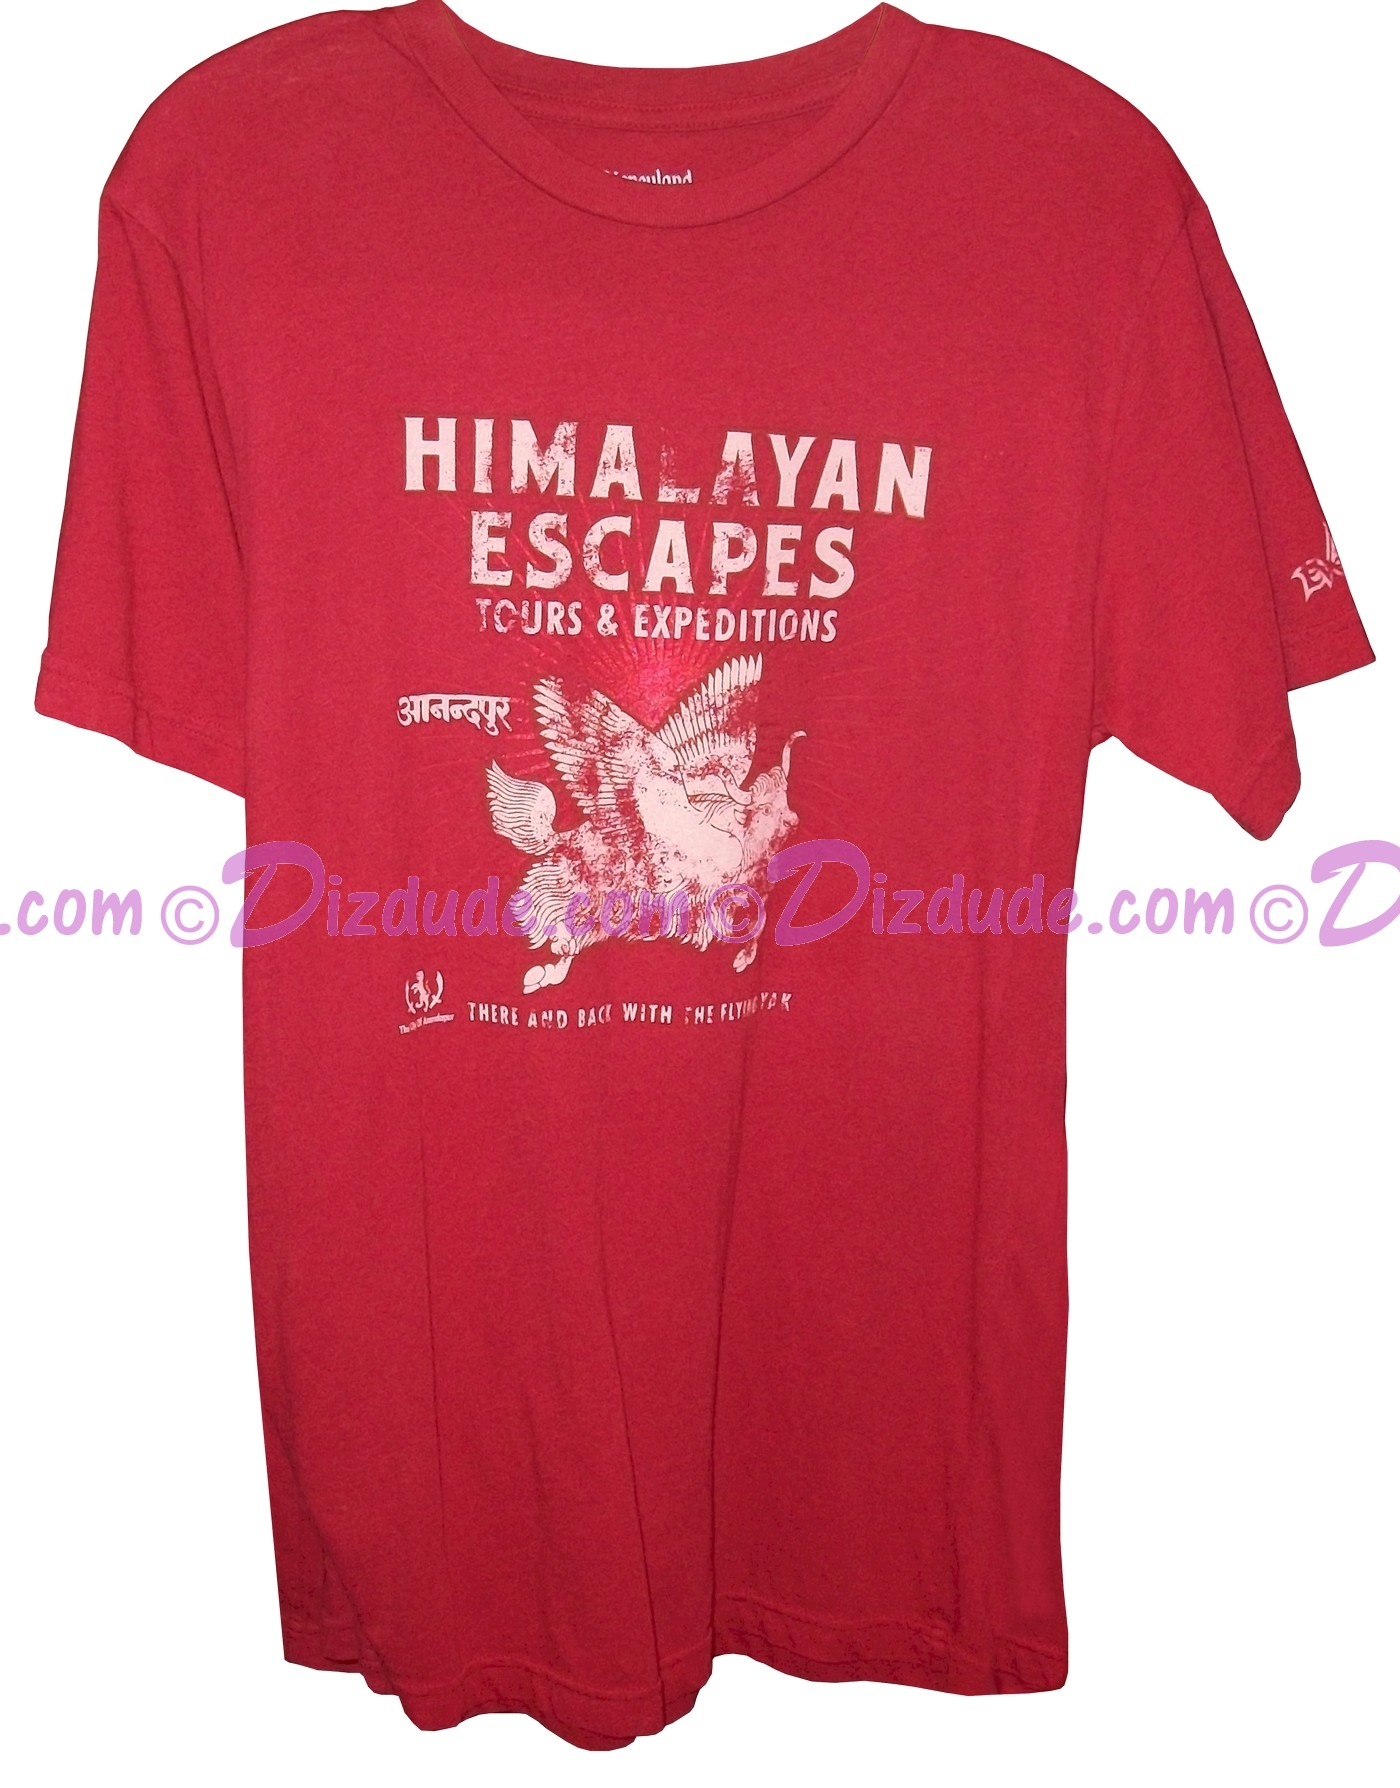 (SOLD OUT) Disney Animal Kingdoms Himalayan Escapes Tours & Expeditions T-Shirt (Tee, Tshirt or T shirt)